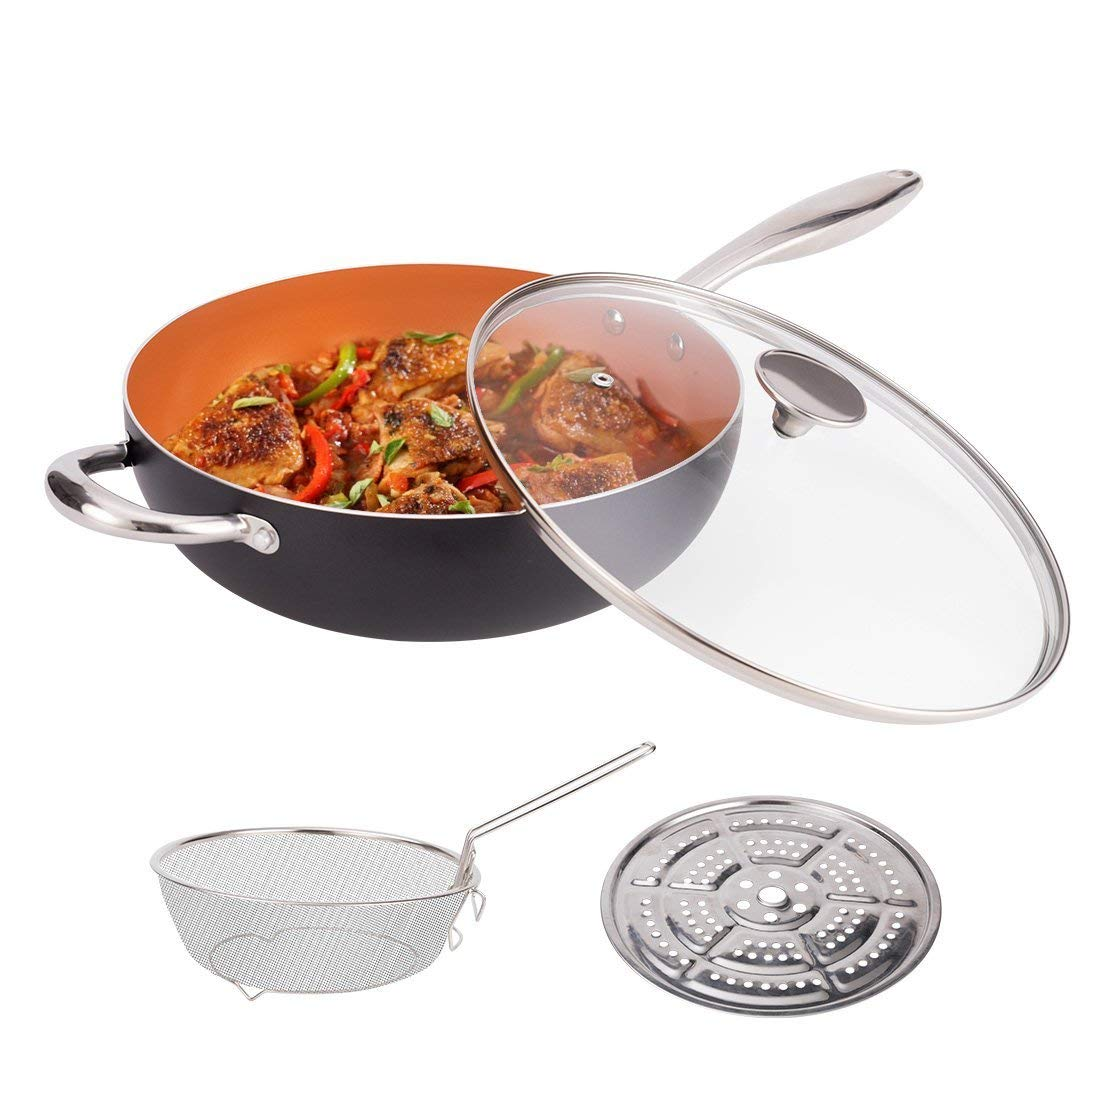 MICHELANGELO 5 Quart Non Stick Woks and Stir Fry Pans With Lid, Deep Frying Basket & Steaming Rack, Non Stick Ceramic Wok With Lid, Nonstick Copper Wok Pan With Lid, Copper Deep Frying Pan With Lid